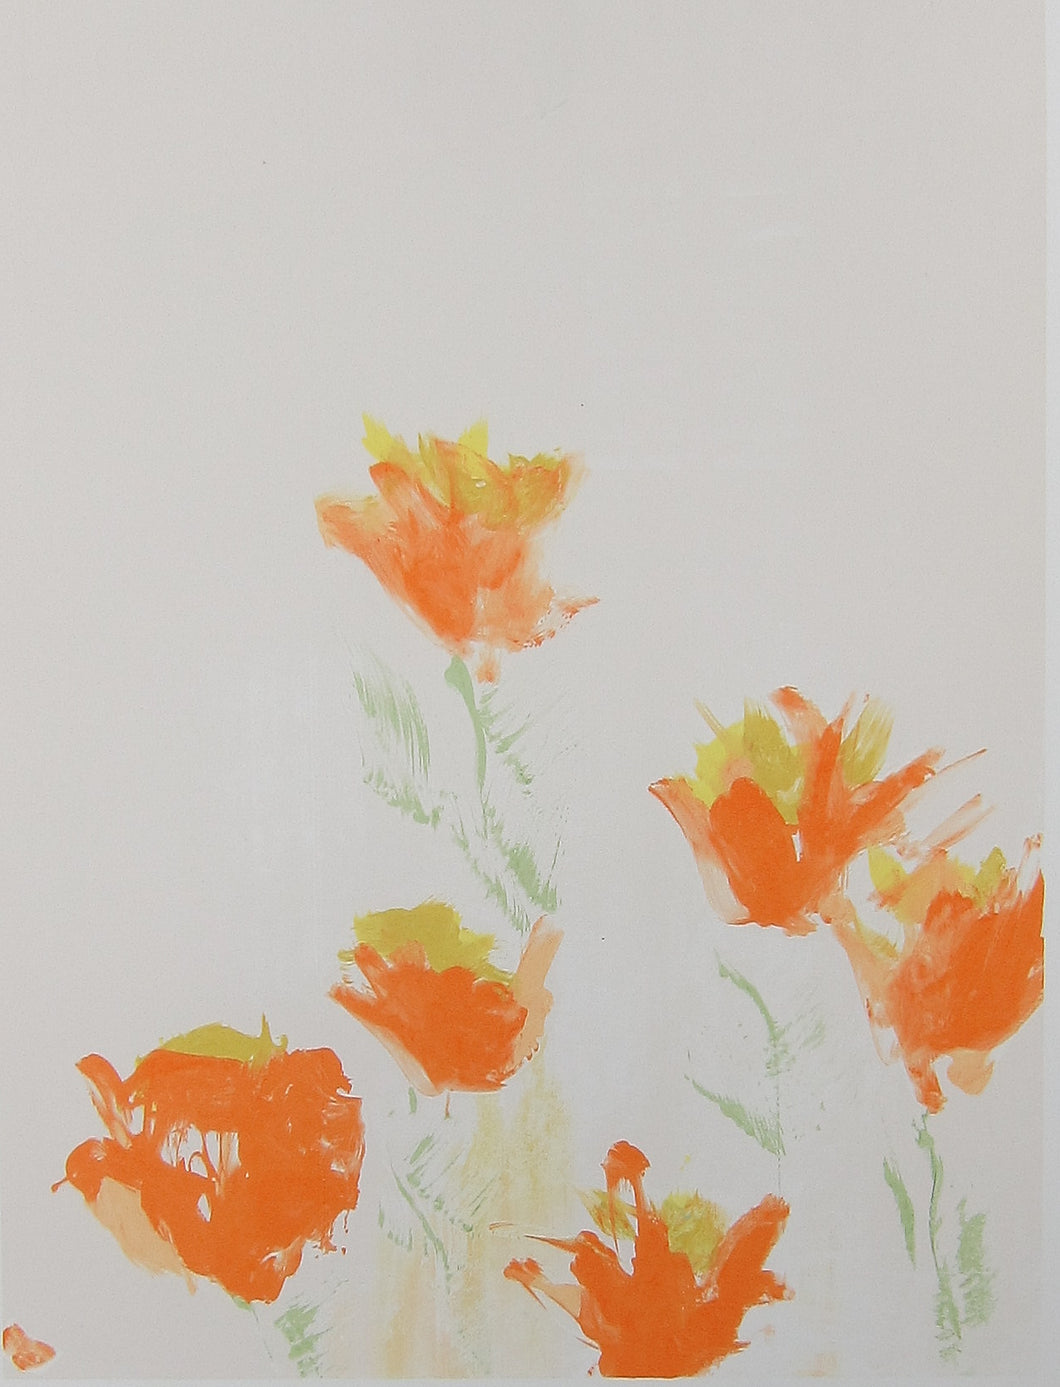 Super Bloom 54 (California Poppies)